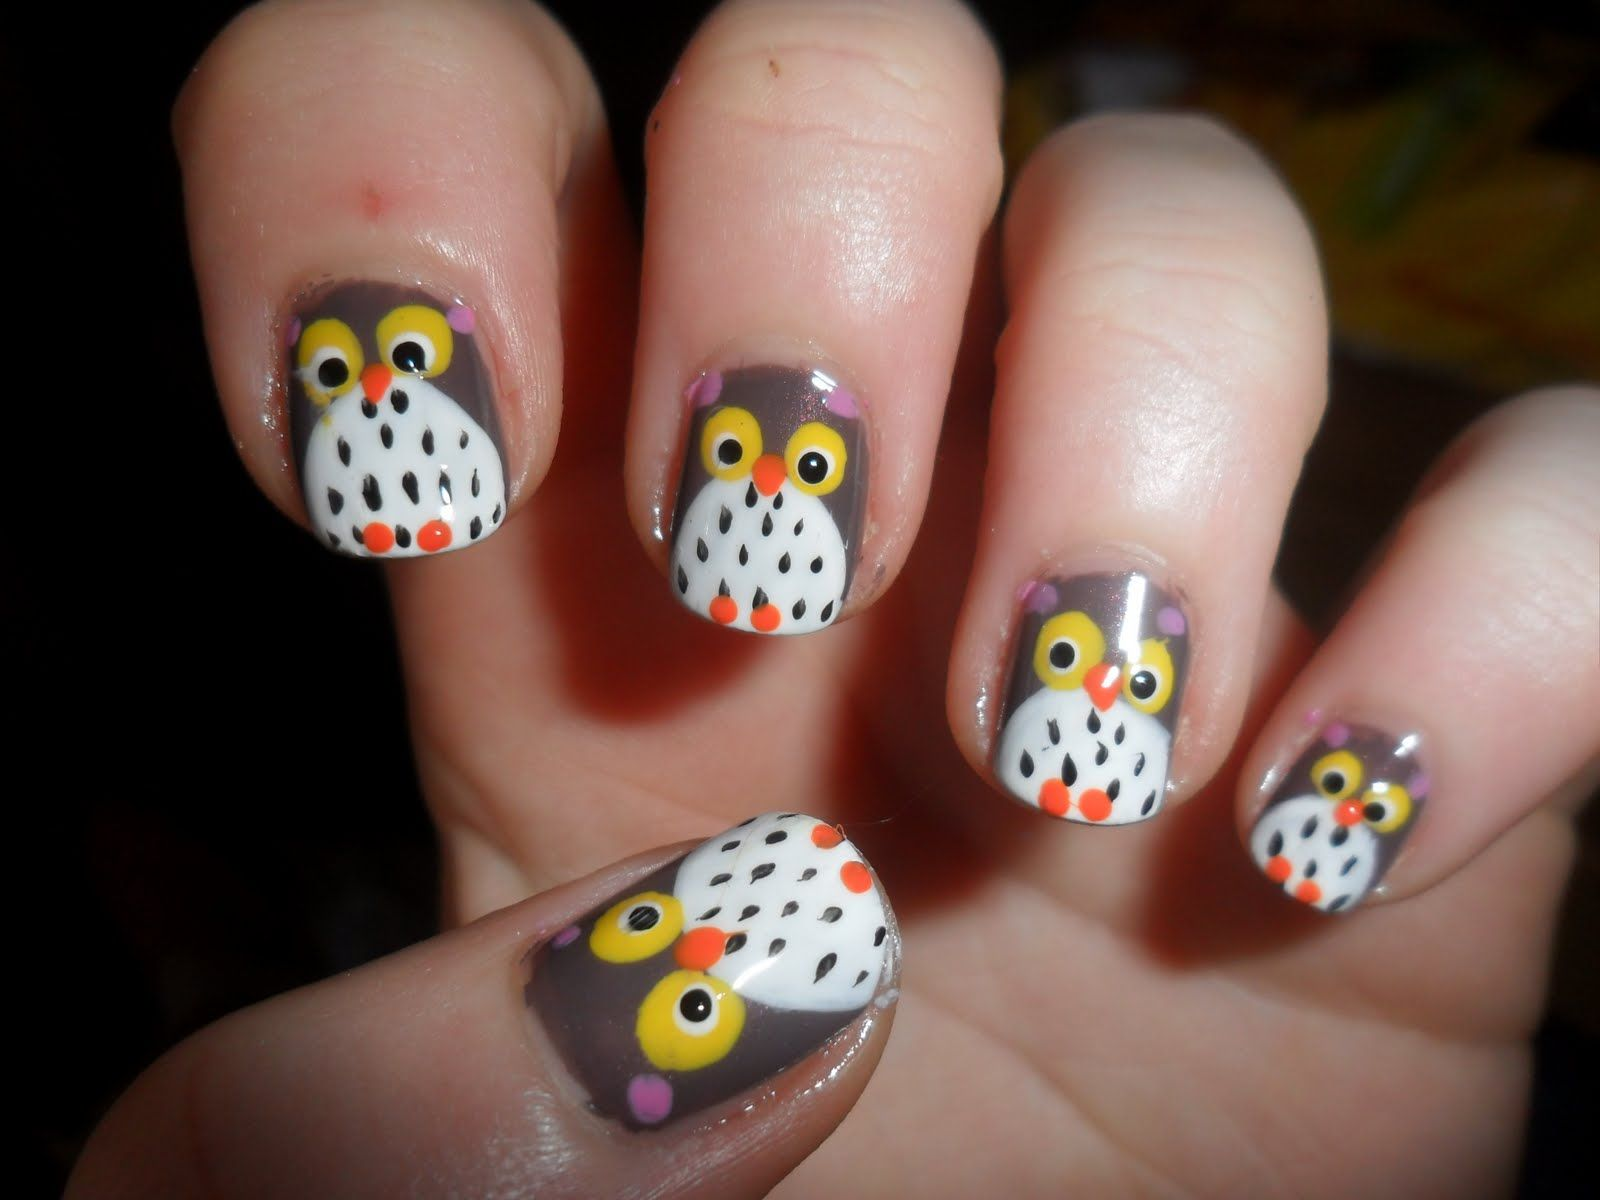 Nail Art Design Nail Designs Tumblr For Short Nails 2014 For ...